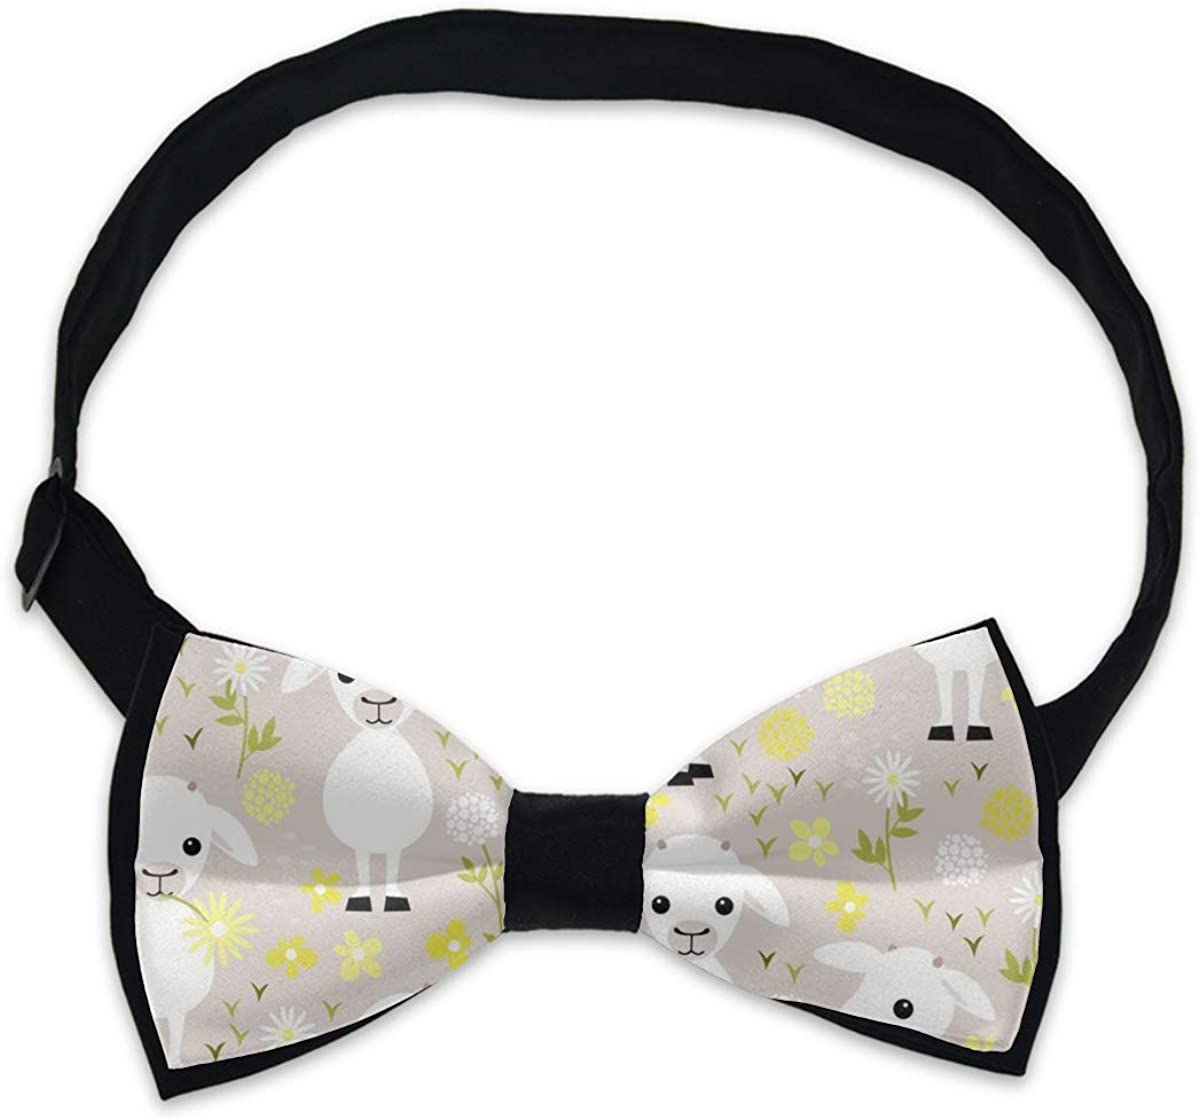 Mens Creative Bow Tie Gift, Adjustable Bowties Necktie, Casual and Formal